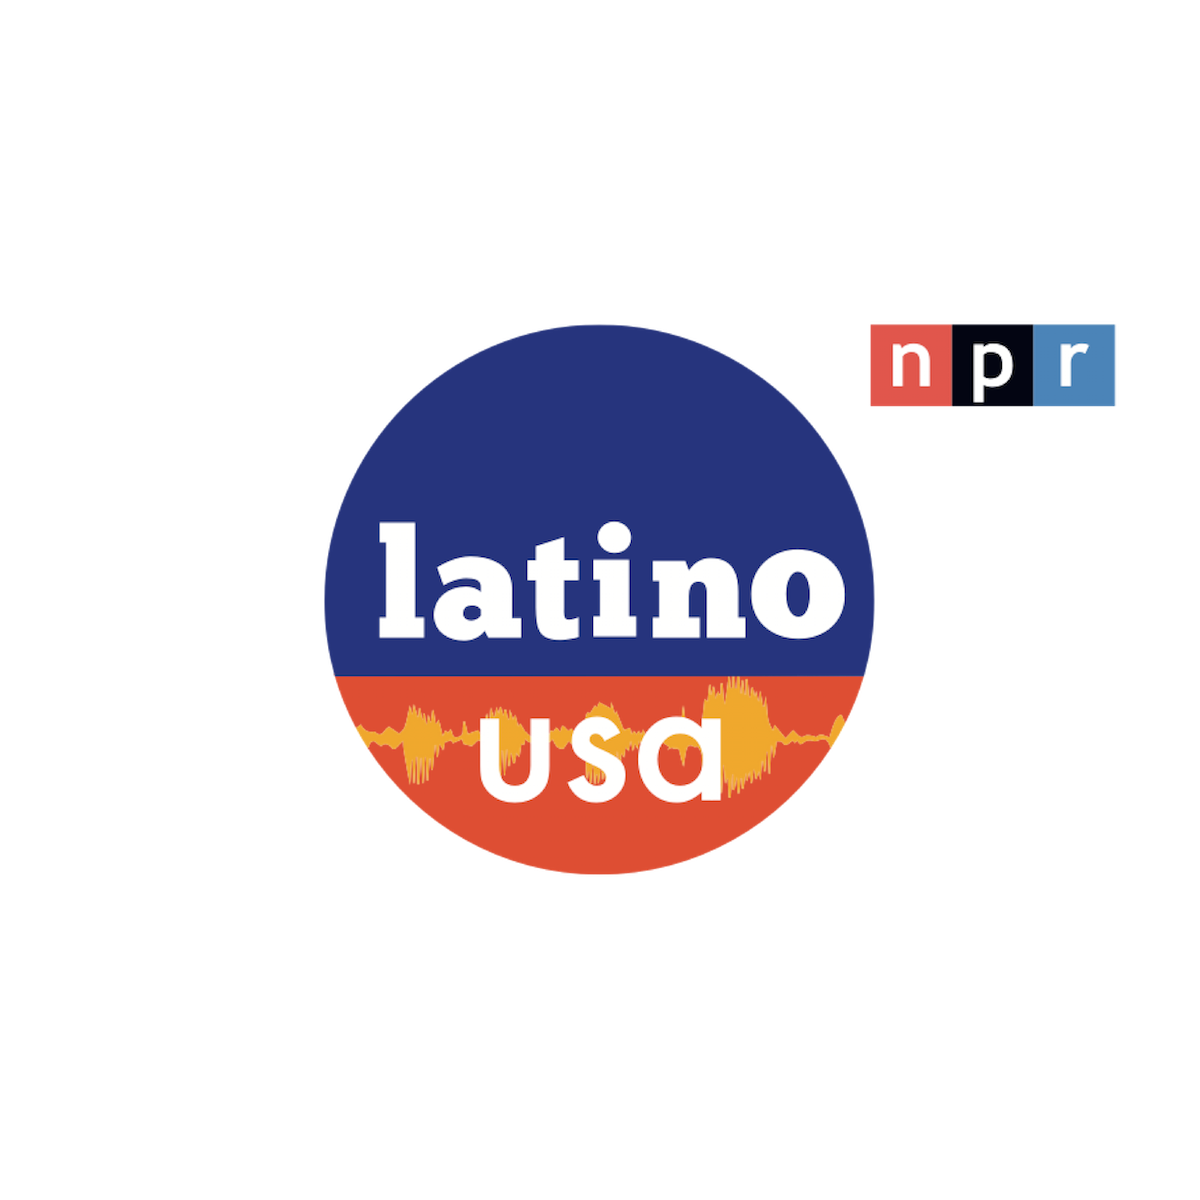 Sandra Cisneros Dreams of Ghosts for NPR's Latino USA -